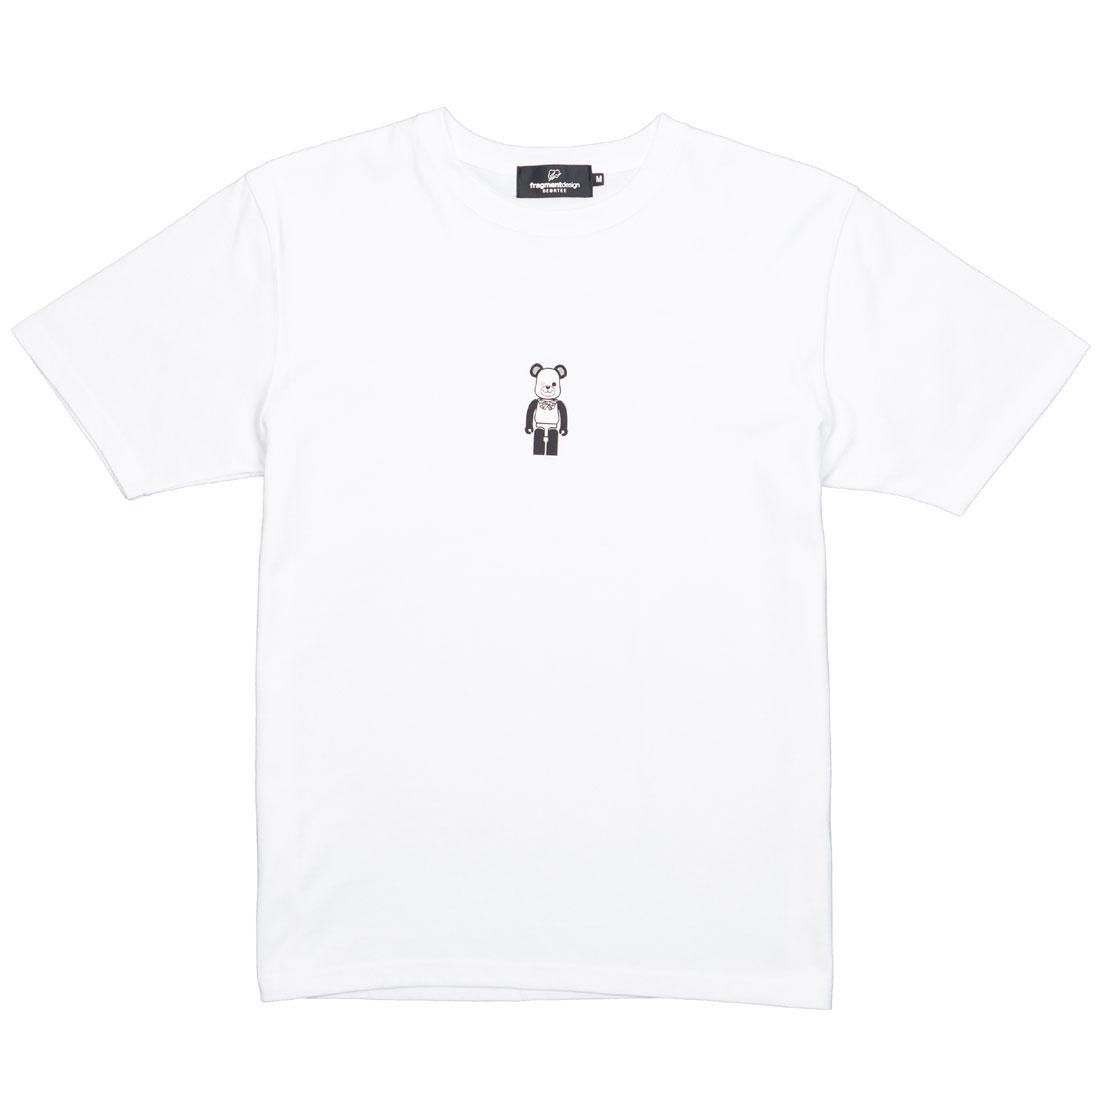 Tシャツ Be@rtee メンズファッション トップス カットソー メンズ 【 Medicom X Freemasonry X Fragment Design Men Be@rtee Tee (white) 】 White